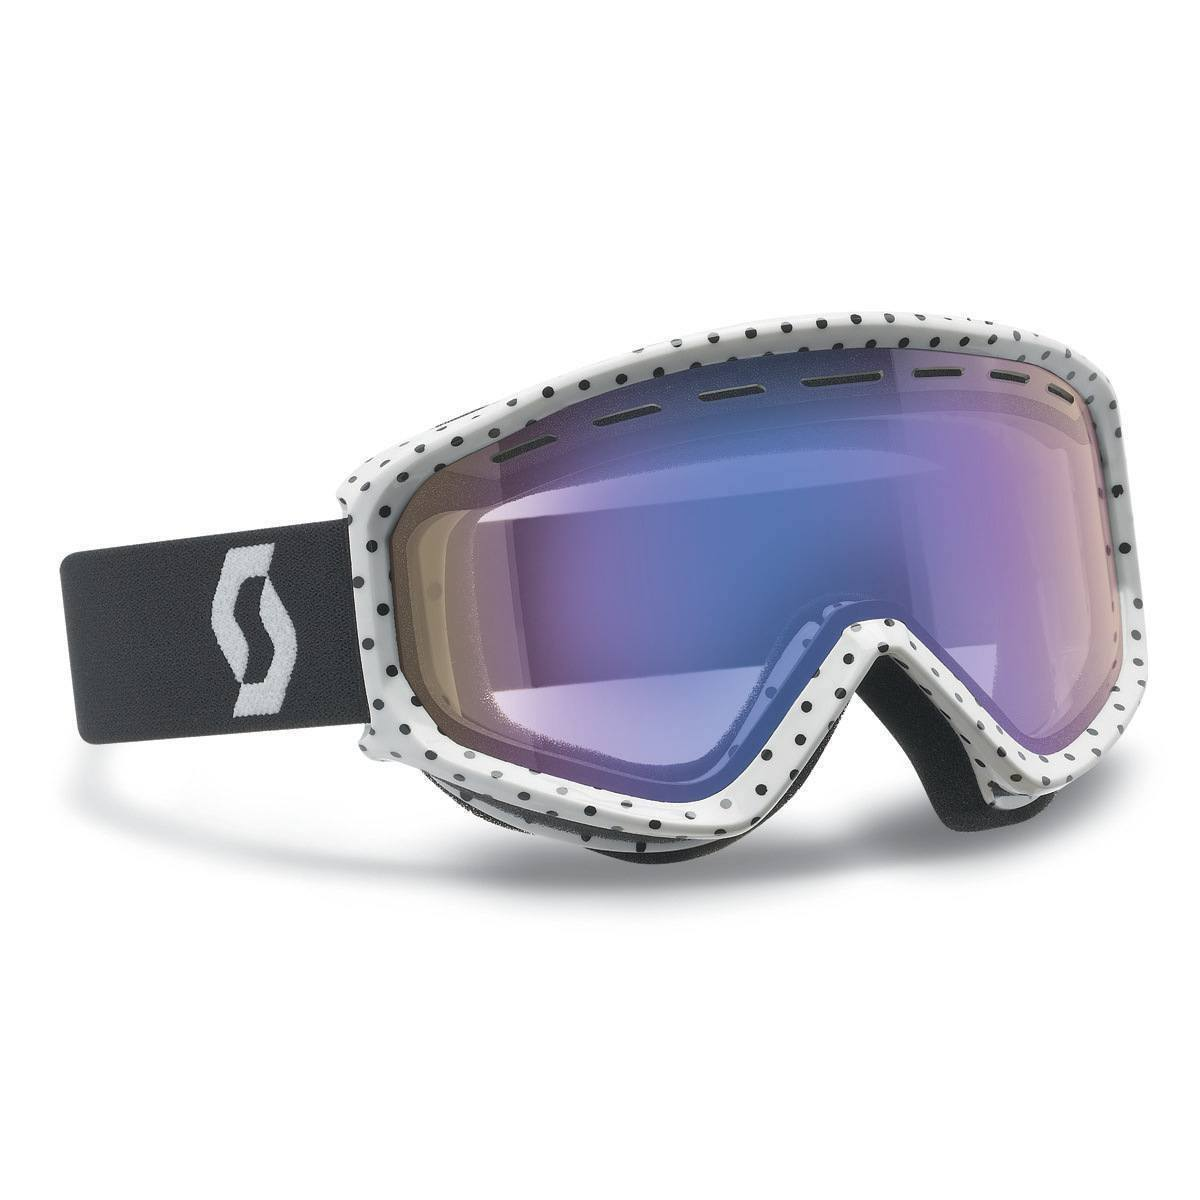 Scott Fact Ski Goggles Rose Violet, Natural Lens by Scott Sports